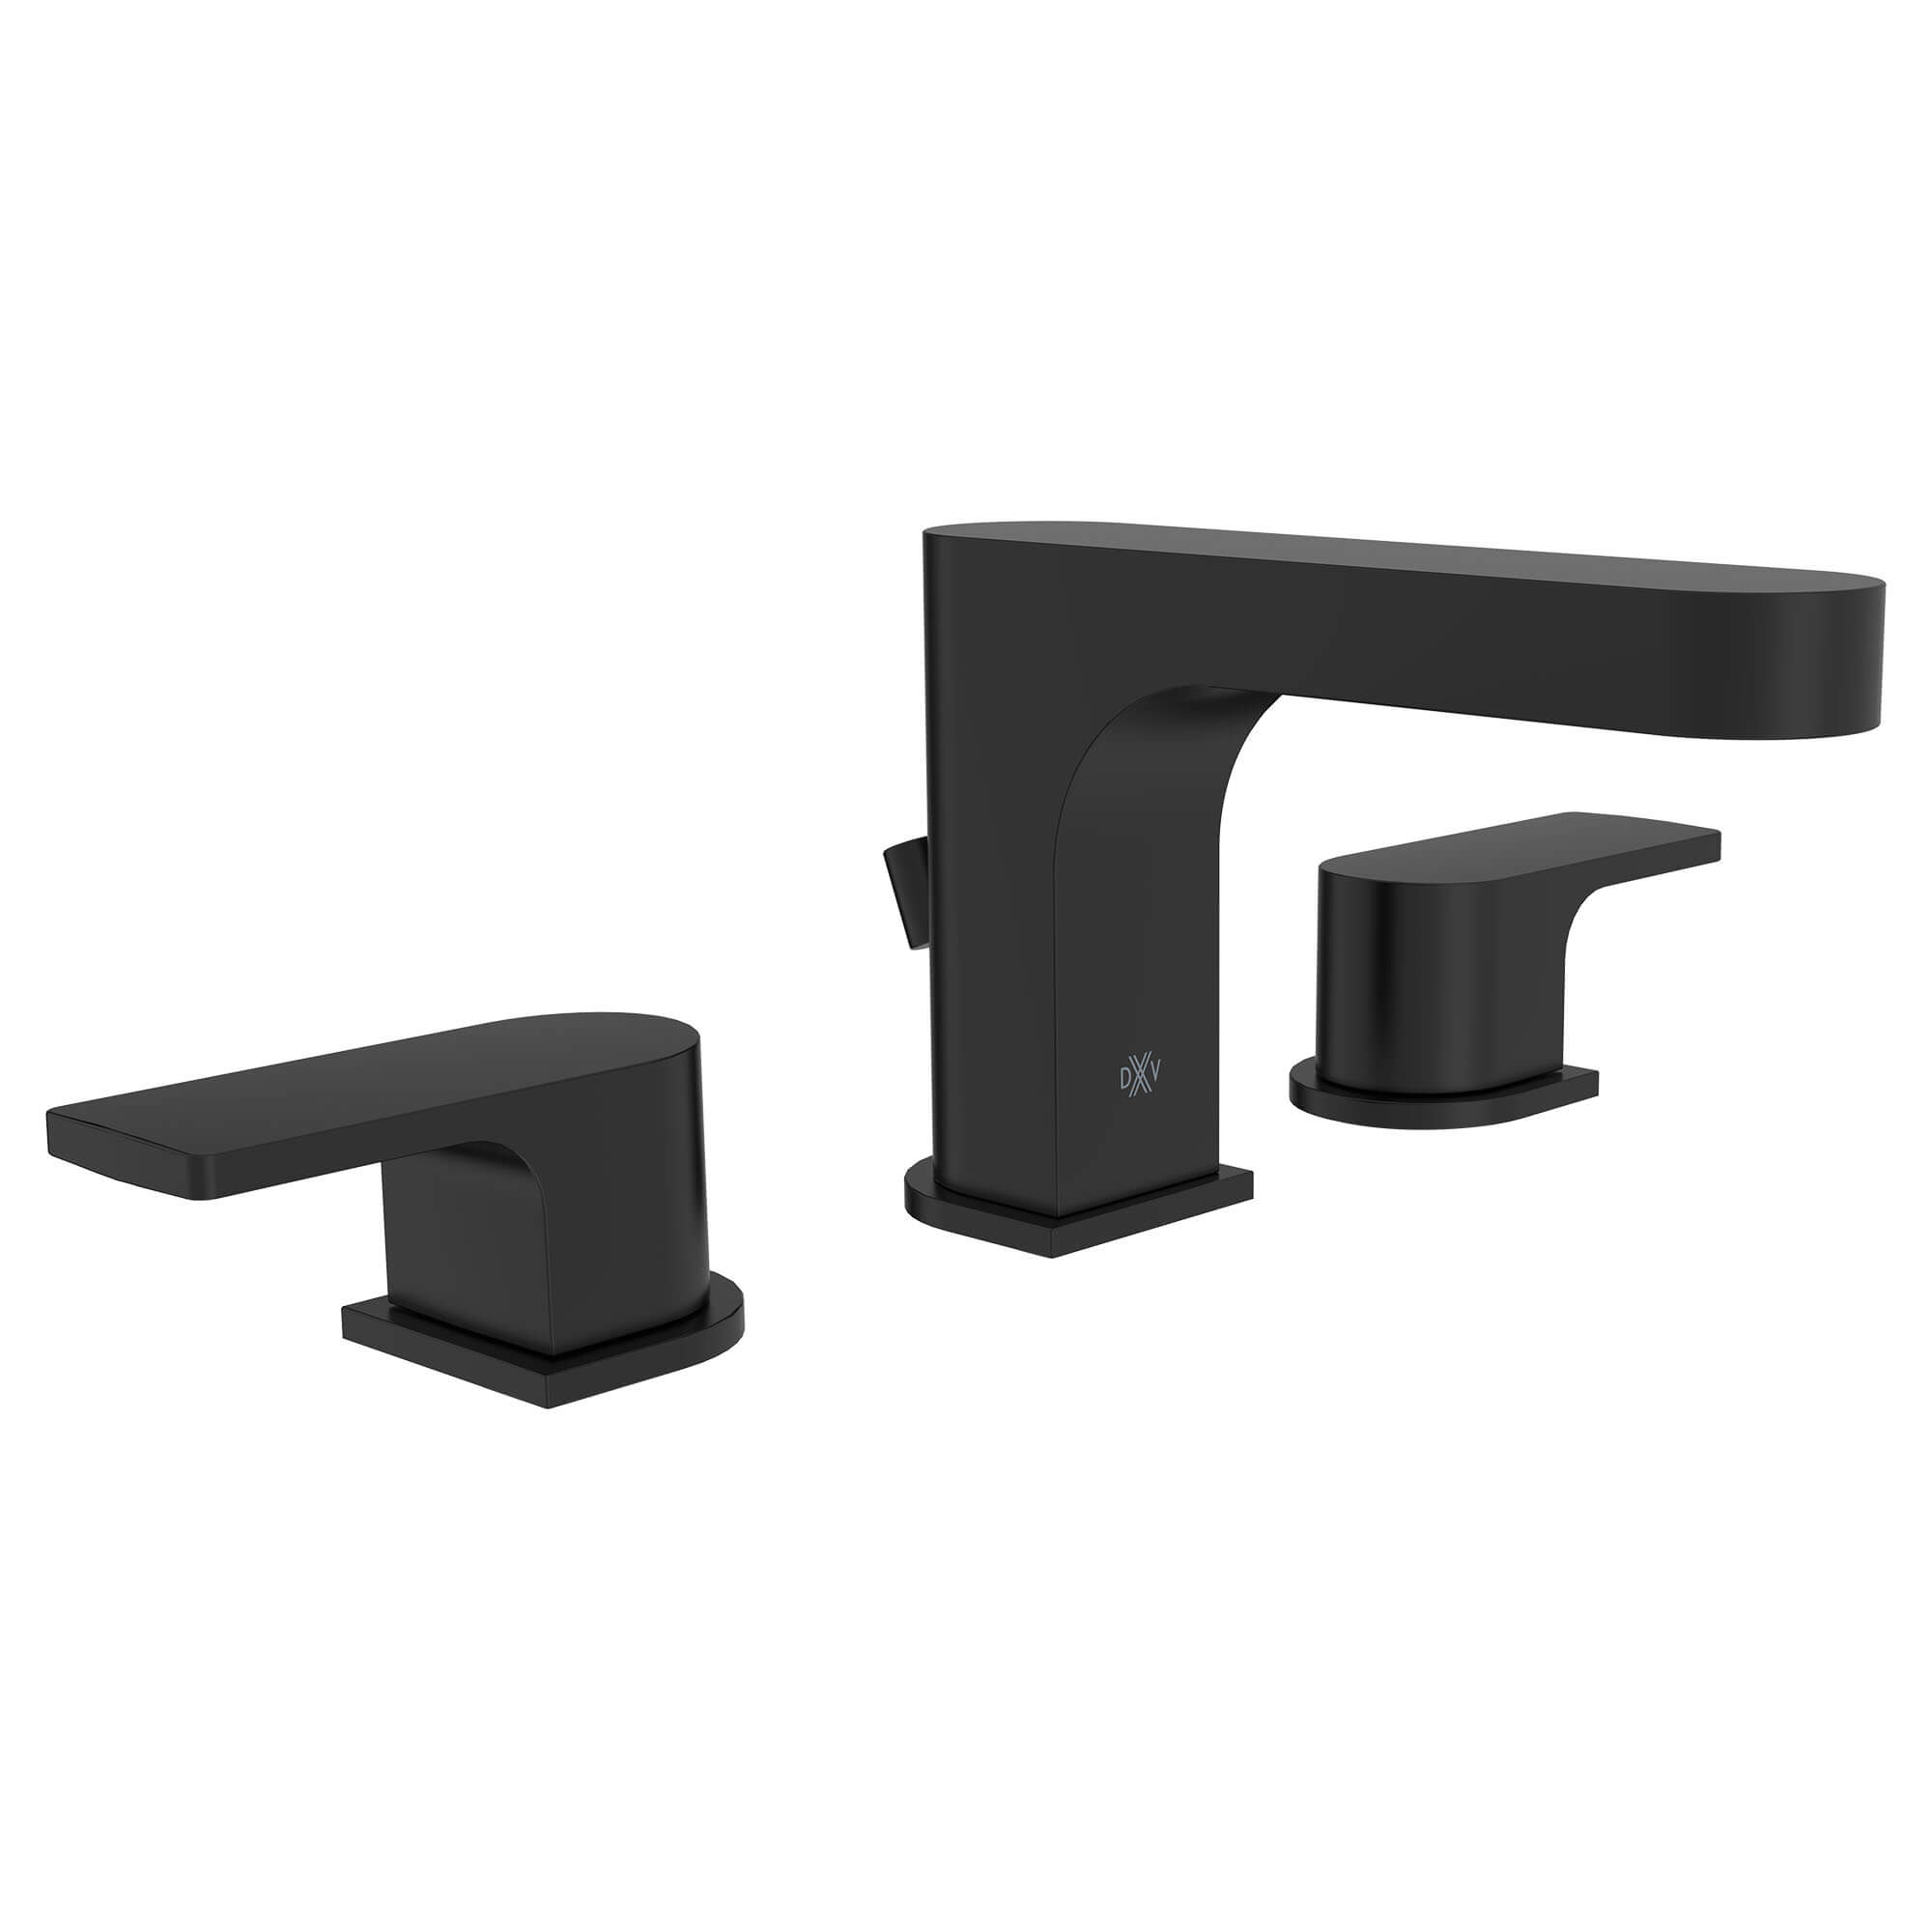 Equility Widespread Bathroom Faucet